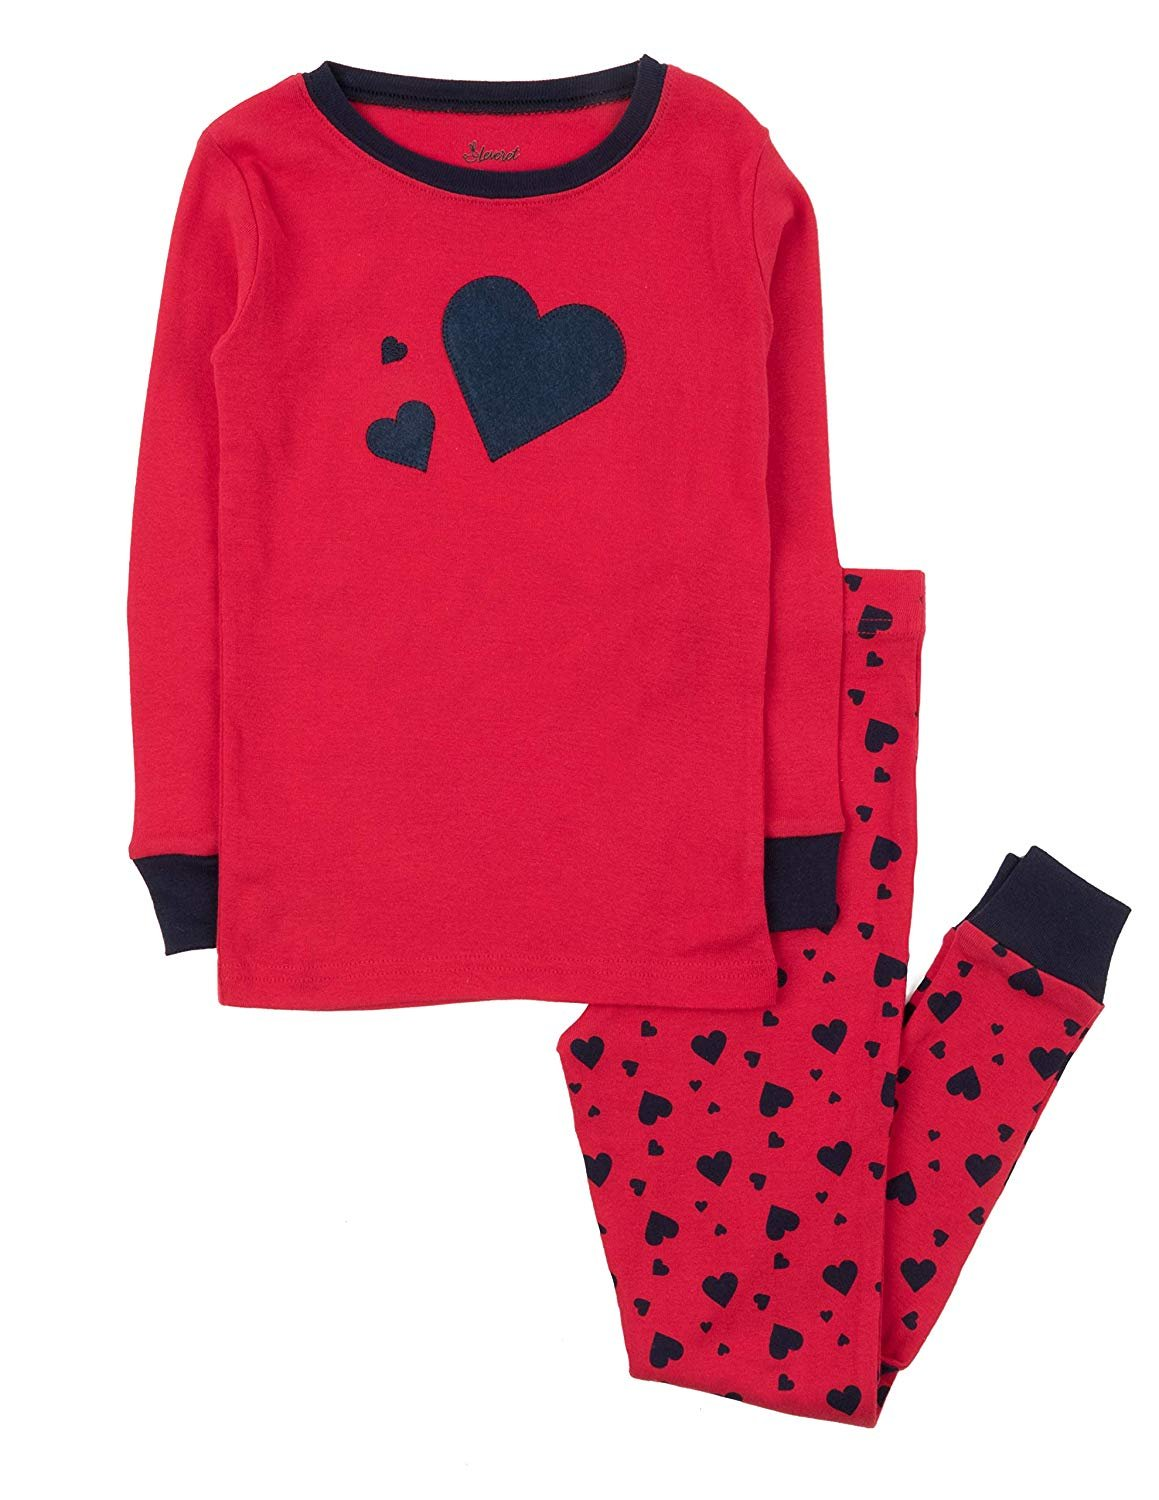 Leveret Kids Pajamas Boys Girls 2 Piece pjs Set 100% Cotton (Navy Hearts, Size 4 Toddler)